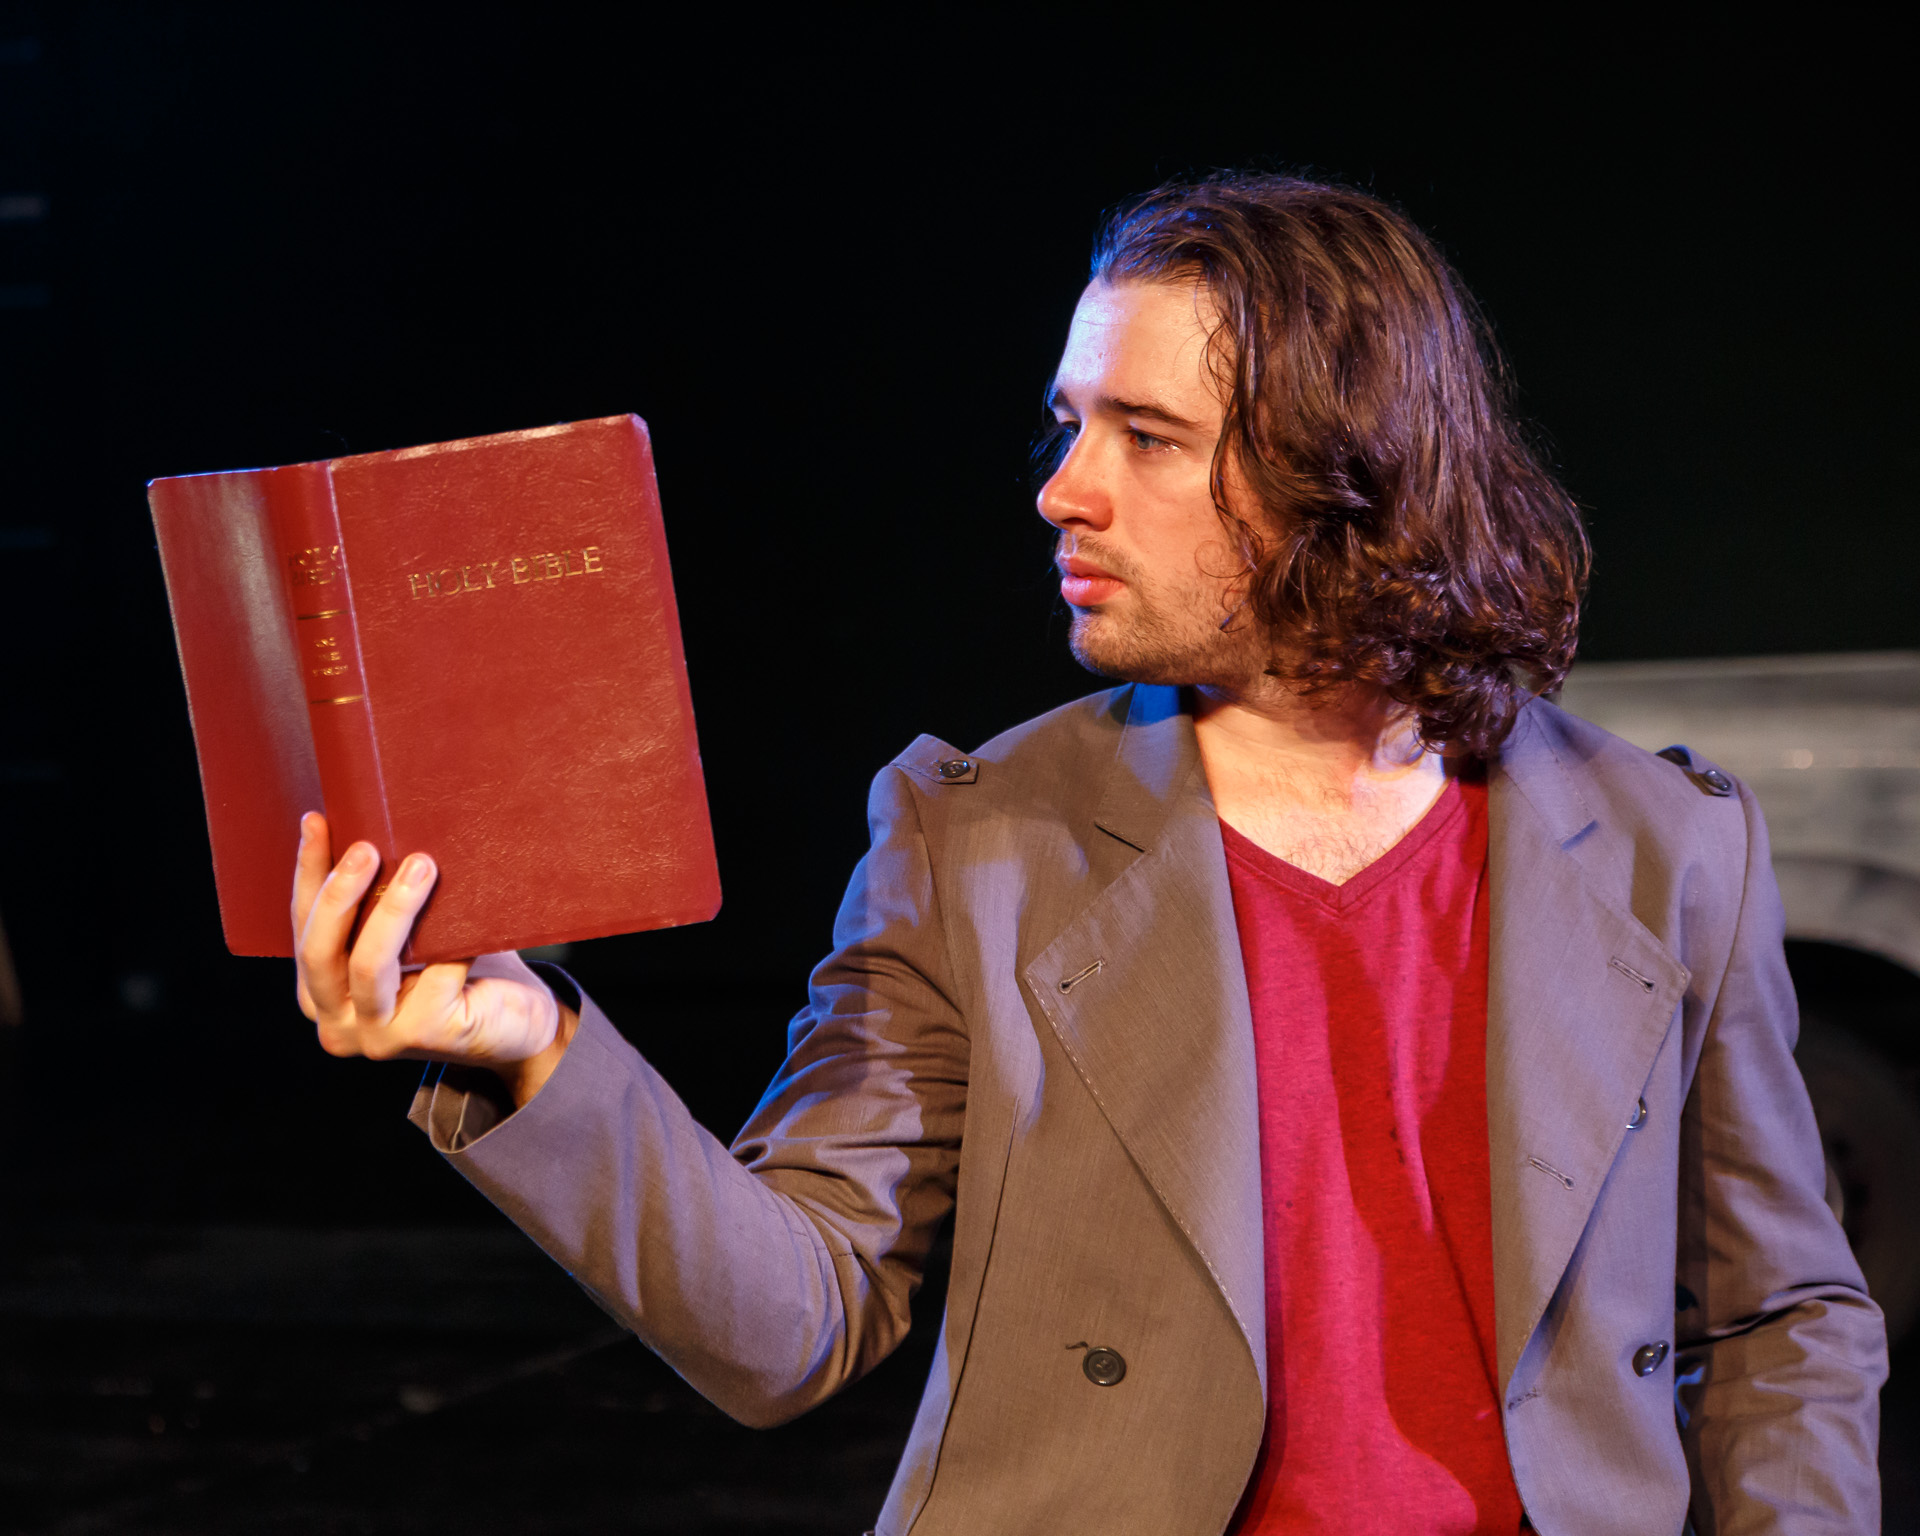 Pictured: Matthew Semple ( The Gospel According to Matthew ). Picture Credit: Geoff Lawrence, Creative Futures Photography